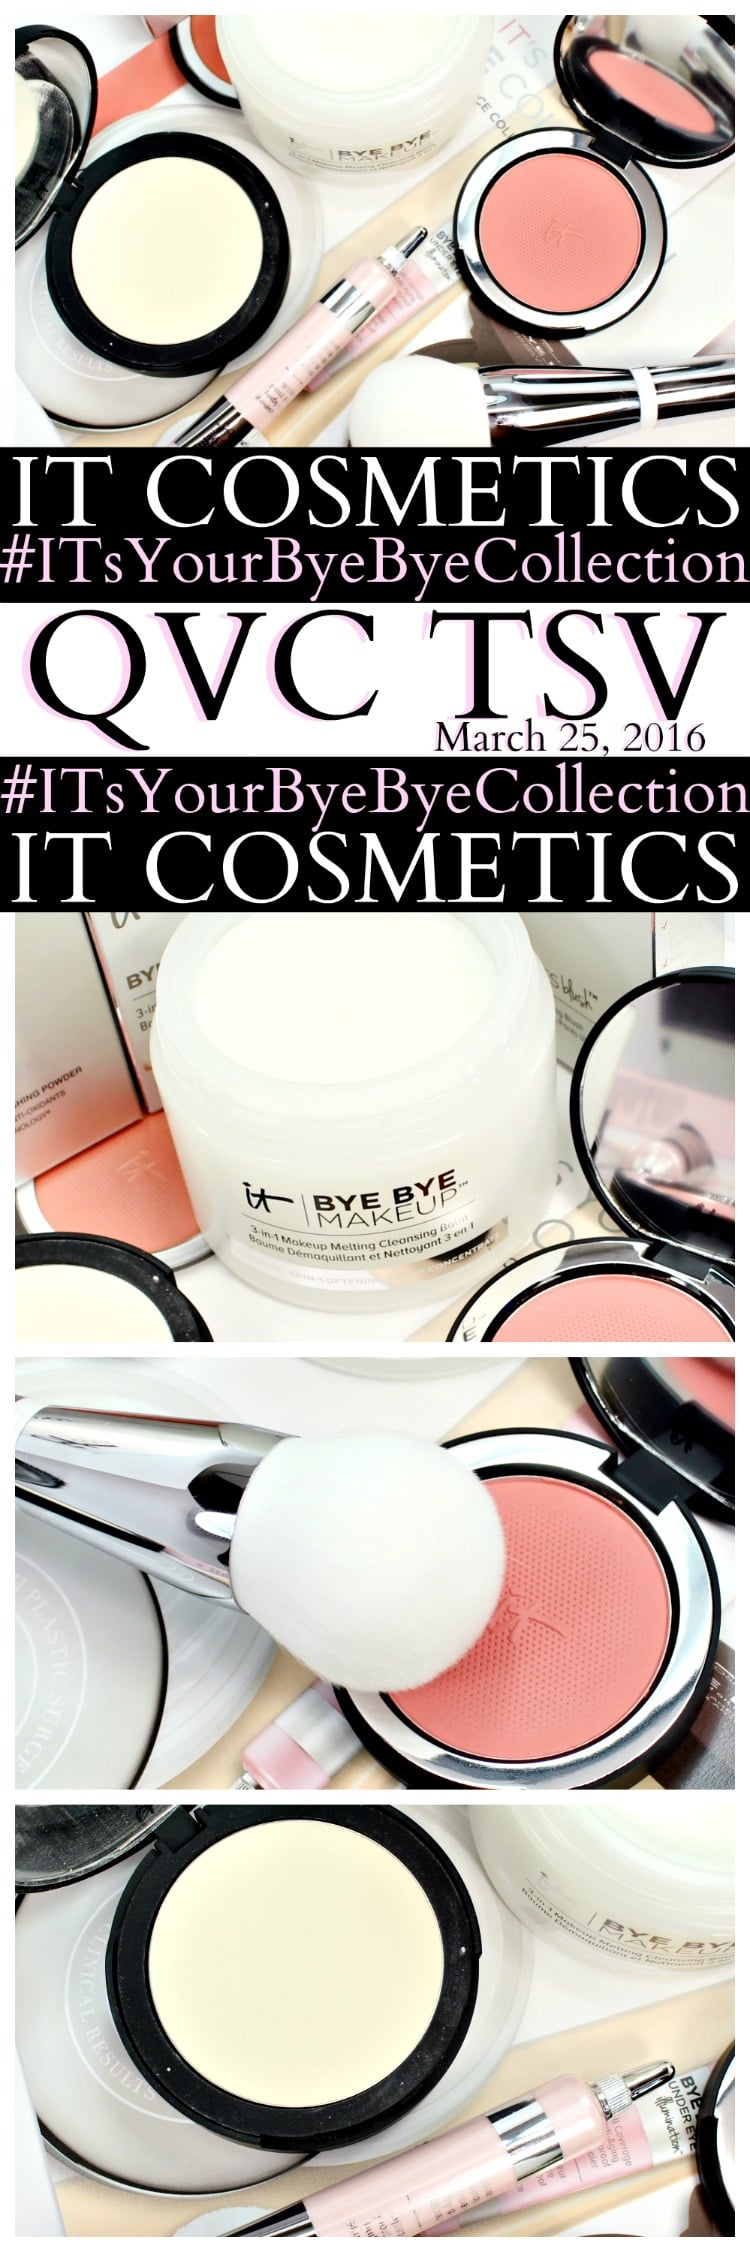 IT Cosmetics QVC TSV IT's Your Bye Bye Collection pinterest